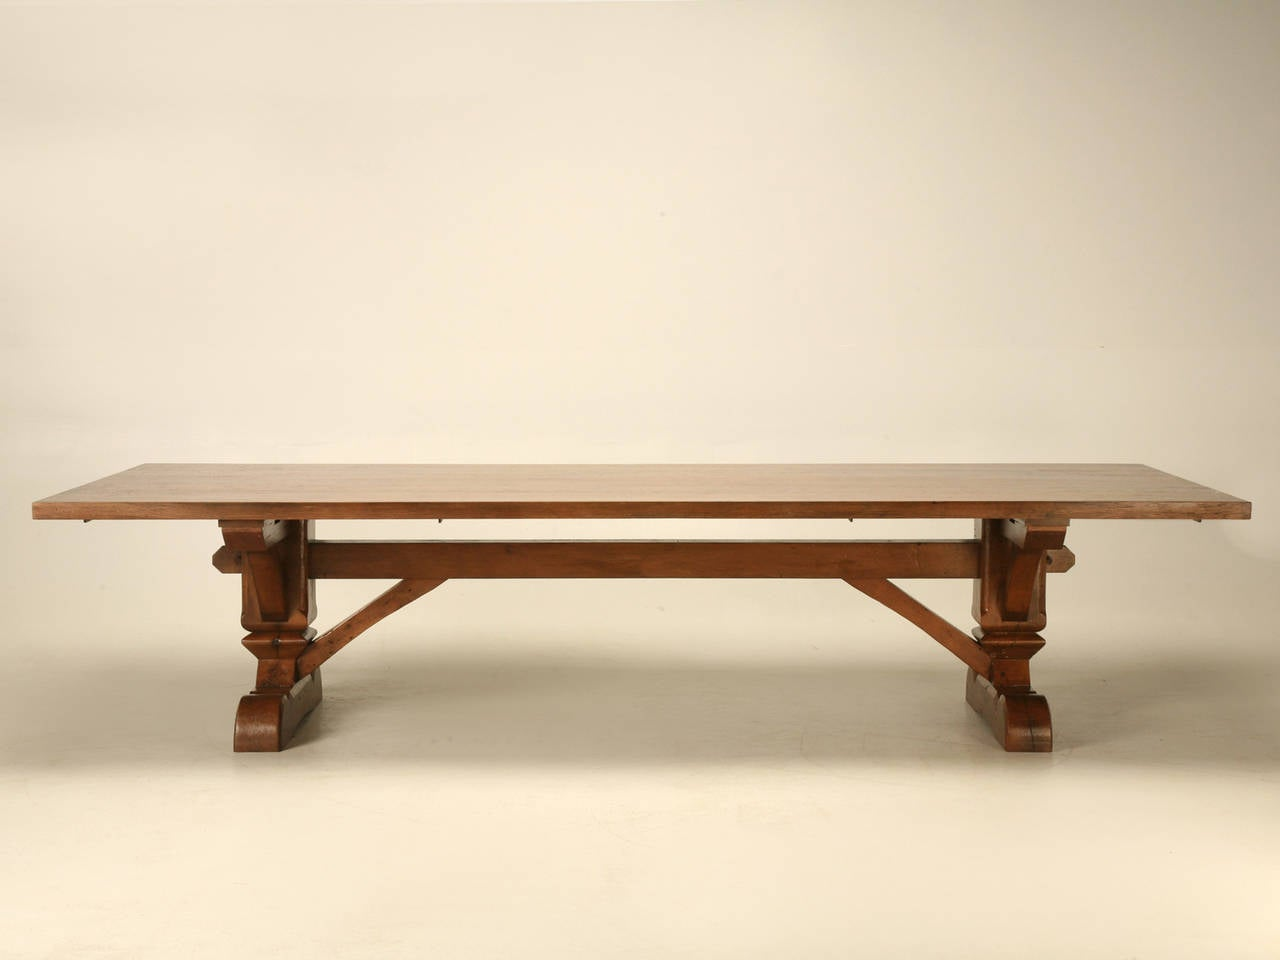 French Louis XIV Authentic Reproduction Dining Table For Sale At 1stdibs